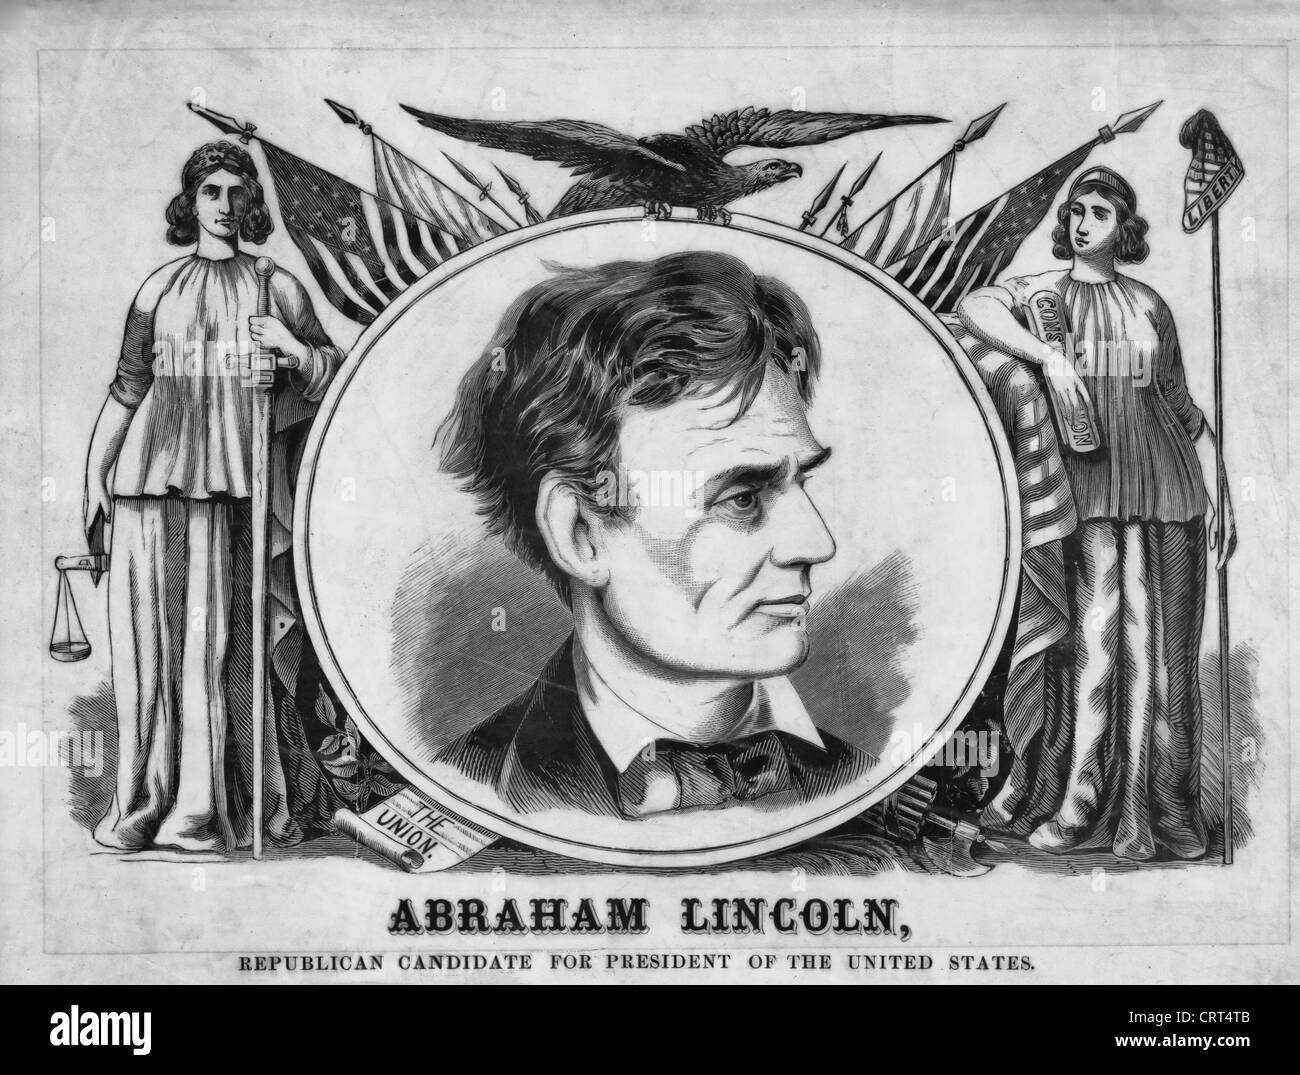 1860 USA Presidential Campaign Poster featuring Republican Presidential candidate Abraham Lincoln - Stock Image